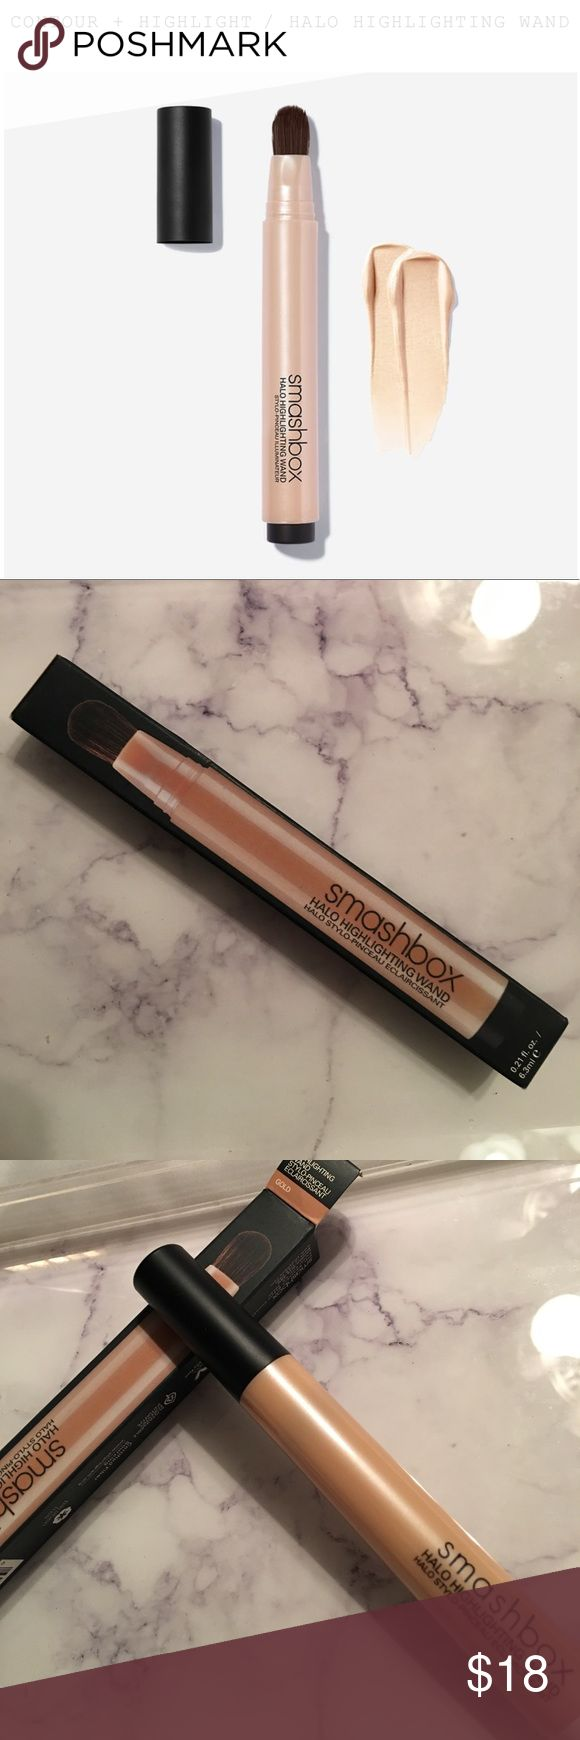 Halo Highlighting Wand - Gold The precise click-through pen delivers a pop of dewy, gorgeous pearl or golden iridescence that leaves skin looking totally lit-from-within. Flip the switch without glitter. It's the way to glow (and strobe) like a pro! Smashbox Makeup Luminizer